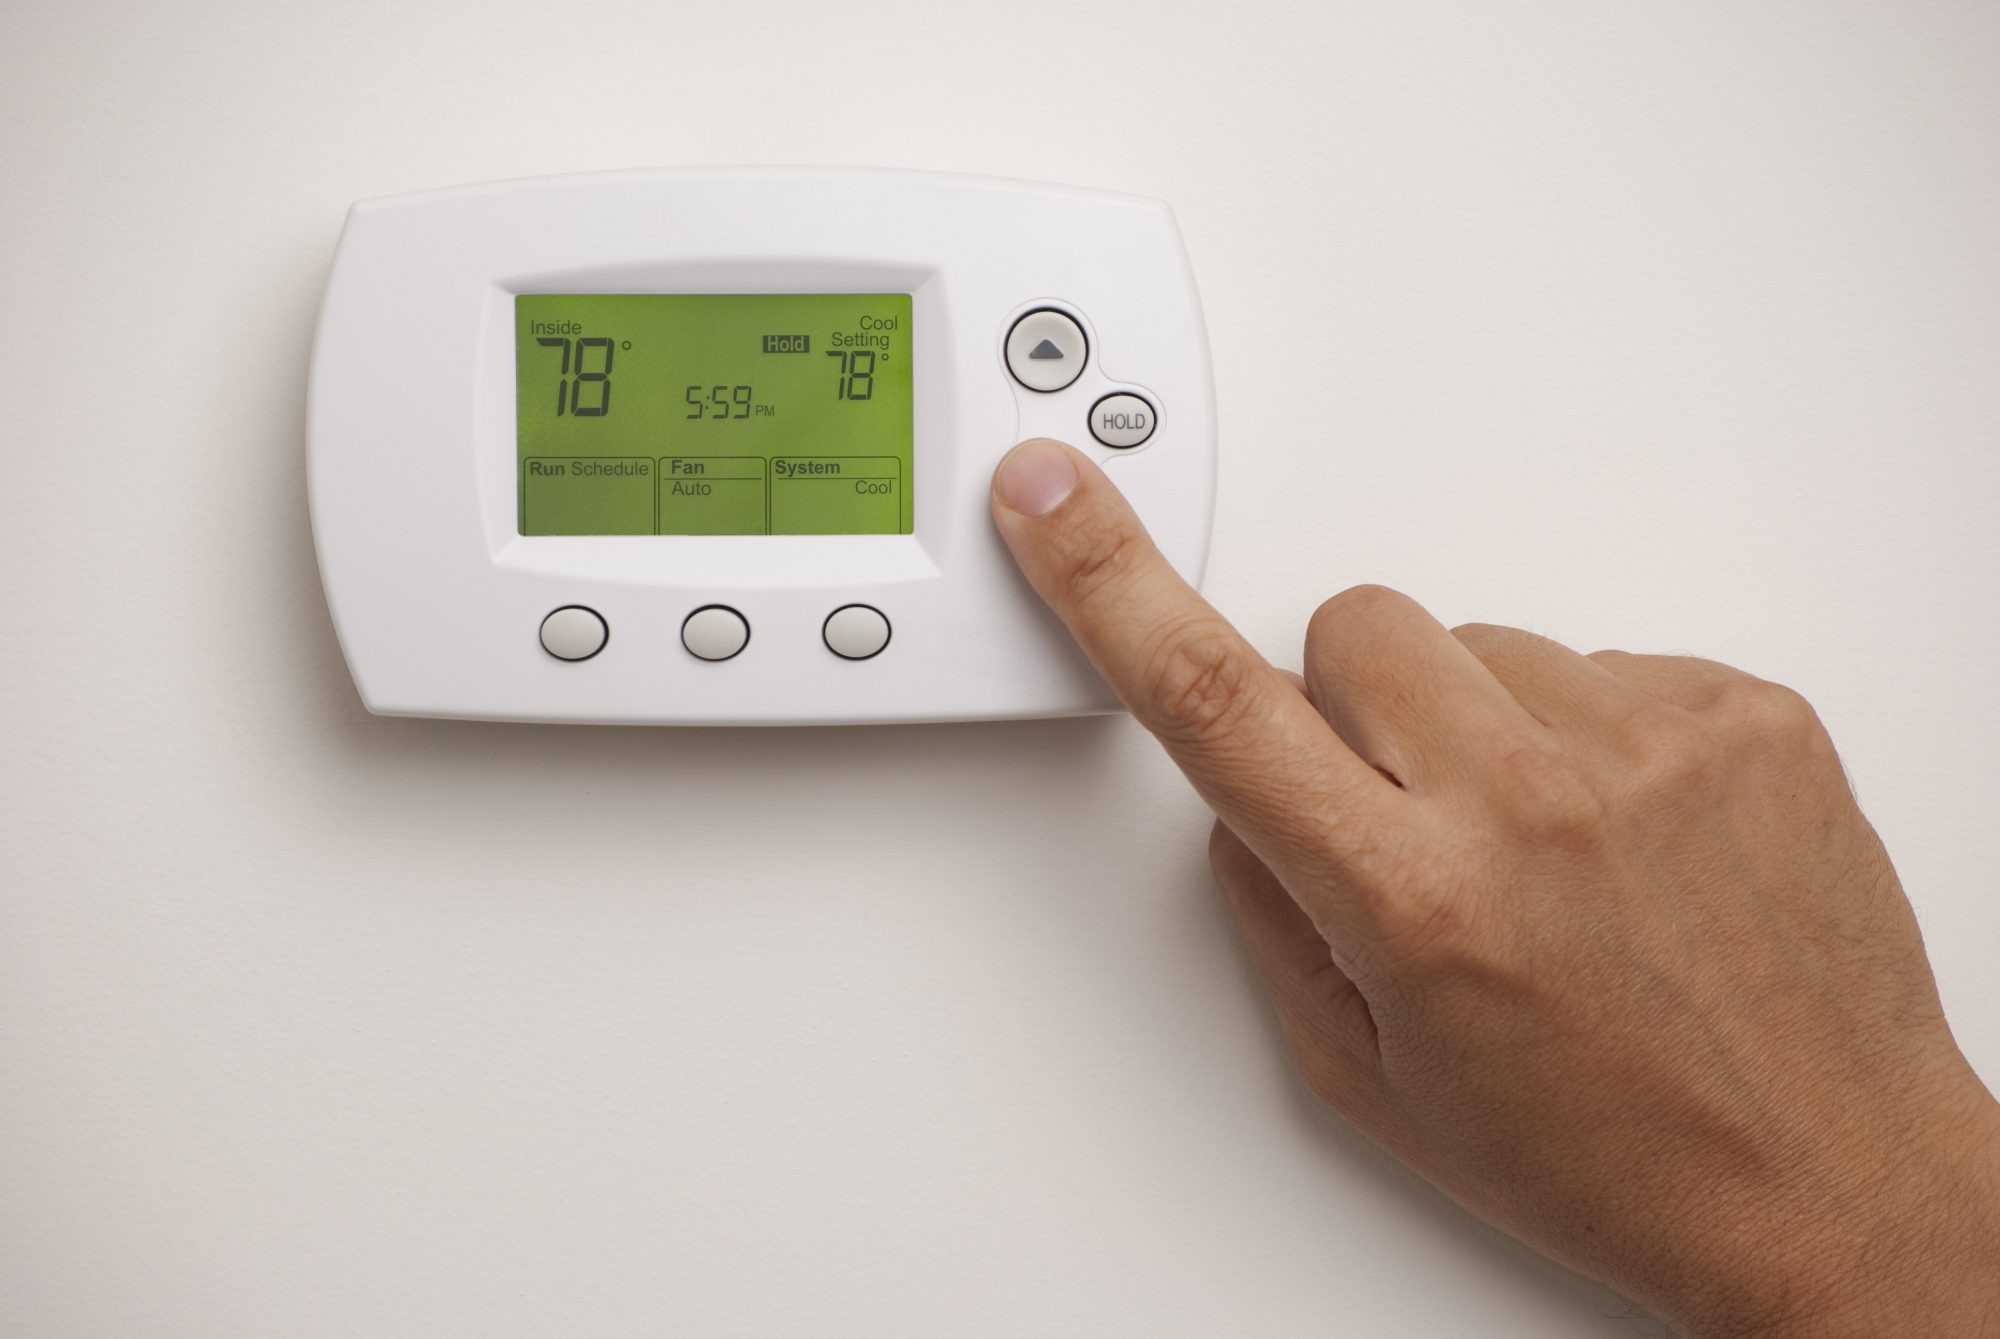 Southerners Are Not Having It With Thermostat Guidelines for 78 Degrees and Above